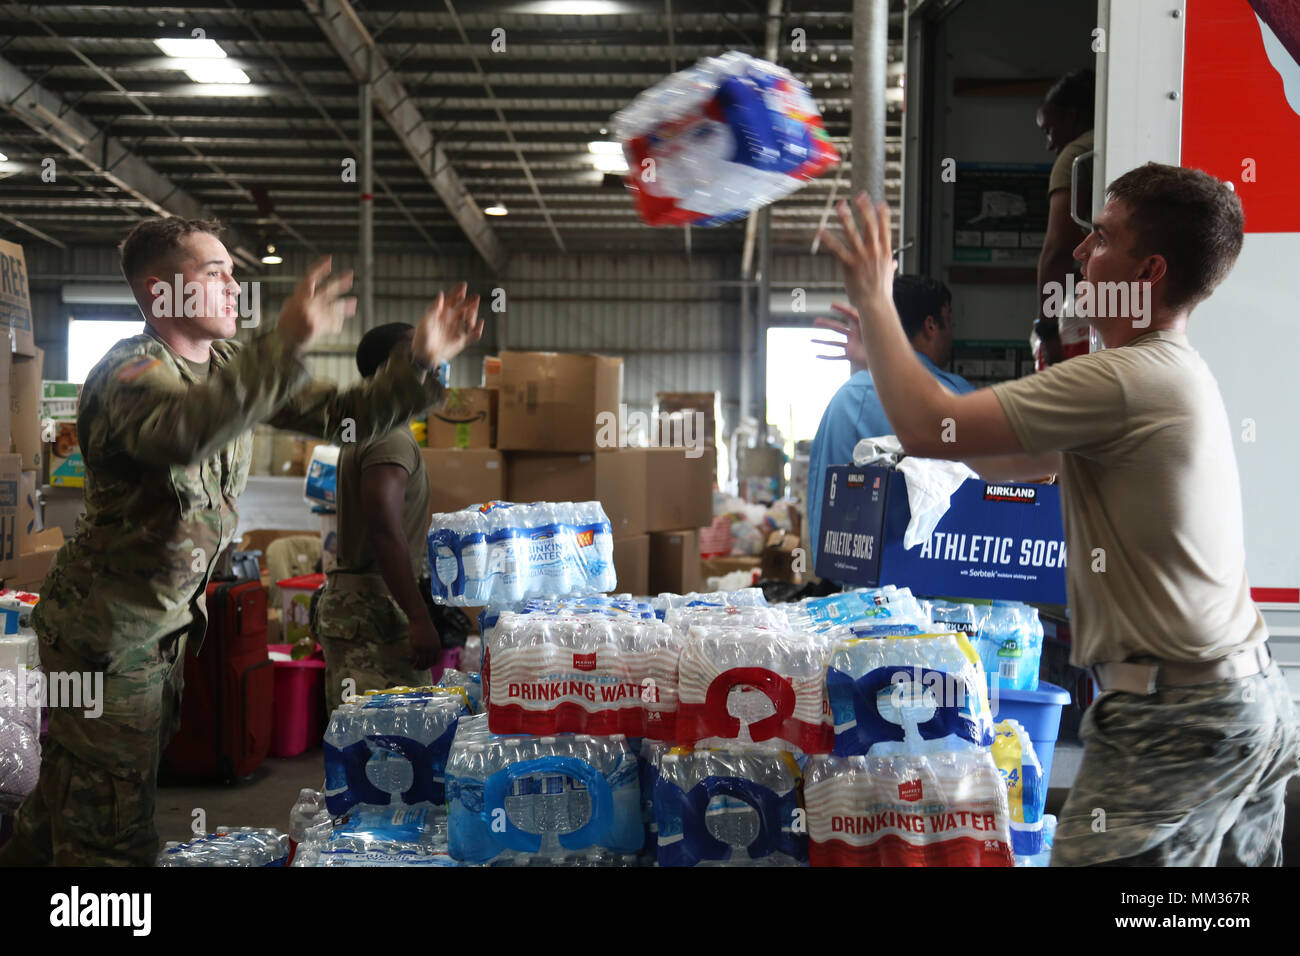 U.S. Army Spc. Trevor Faulkner, Motor Transport Operator, left, and Spc. Elert Nicholas, Chemical, Biological, Radiological and Nuclear Specialist, assigned to 48th Chemical Brigade, unload bottled waters at Port Arthur, Texas, Sept. 3, 2017. Bottled waters, food, and toiletries were delivered out to those affected by Hurricane Harvey.  (U.S. Army photo by Spc. Elizabeth Brown) - Stock Image